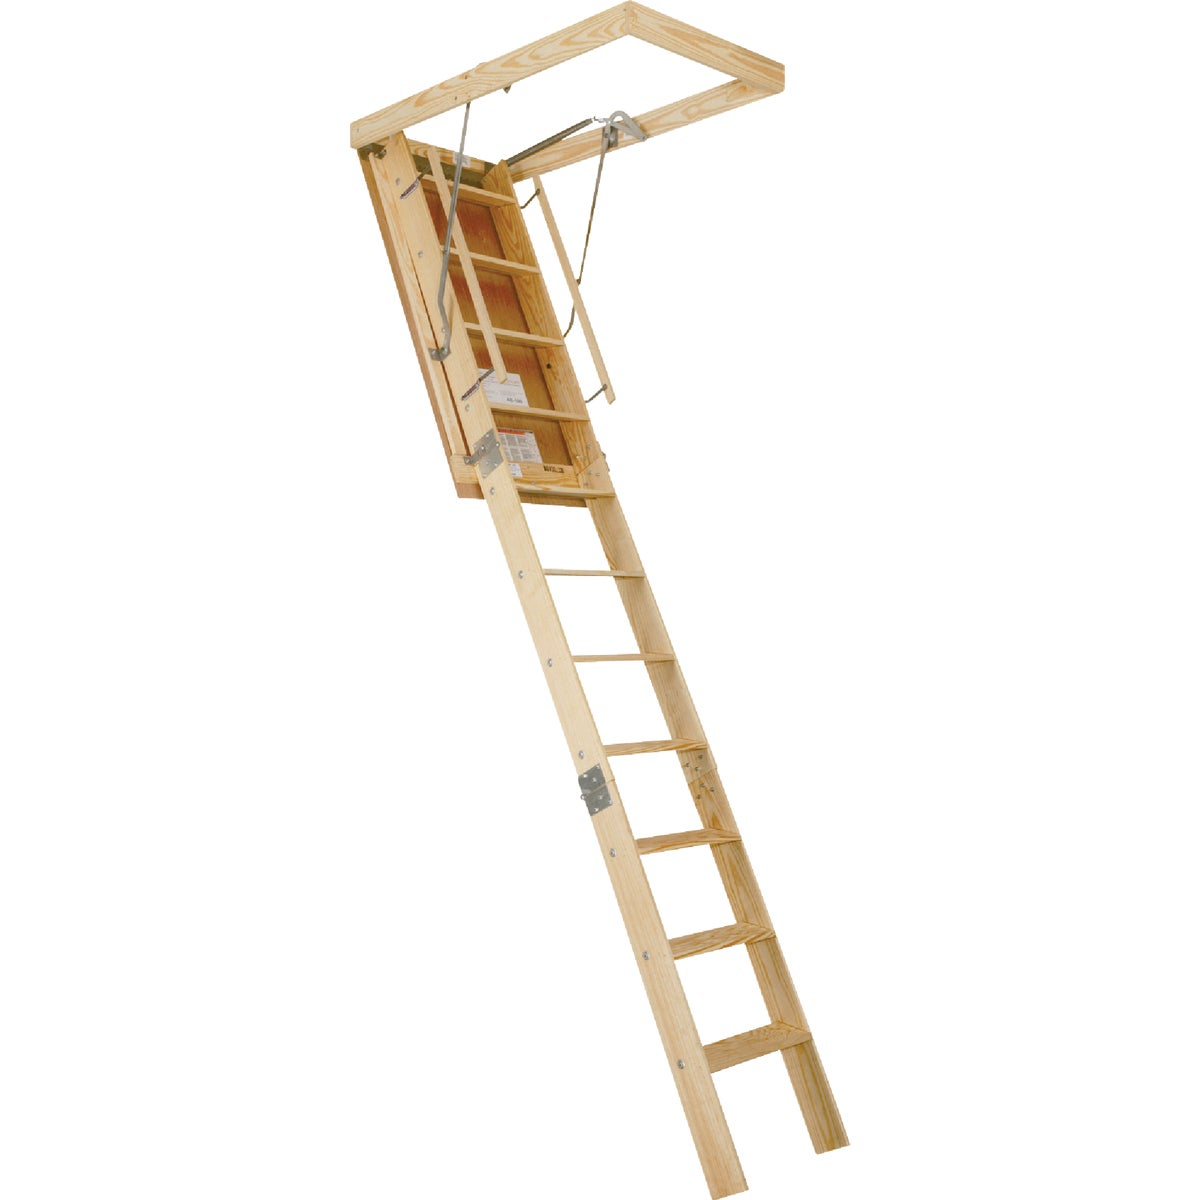 30X60X105 ATTIC STAIR - AG-89SP by Louisville Ladder